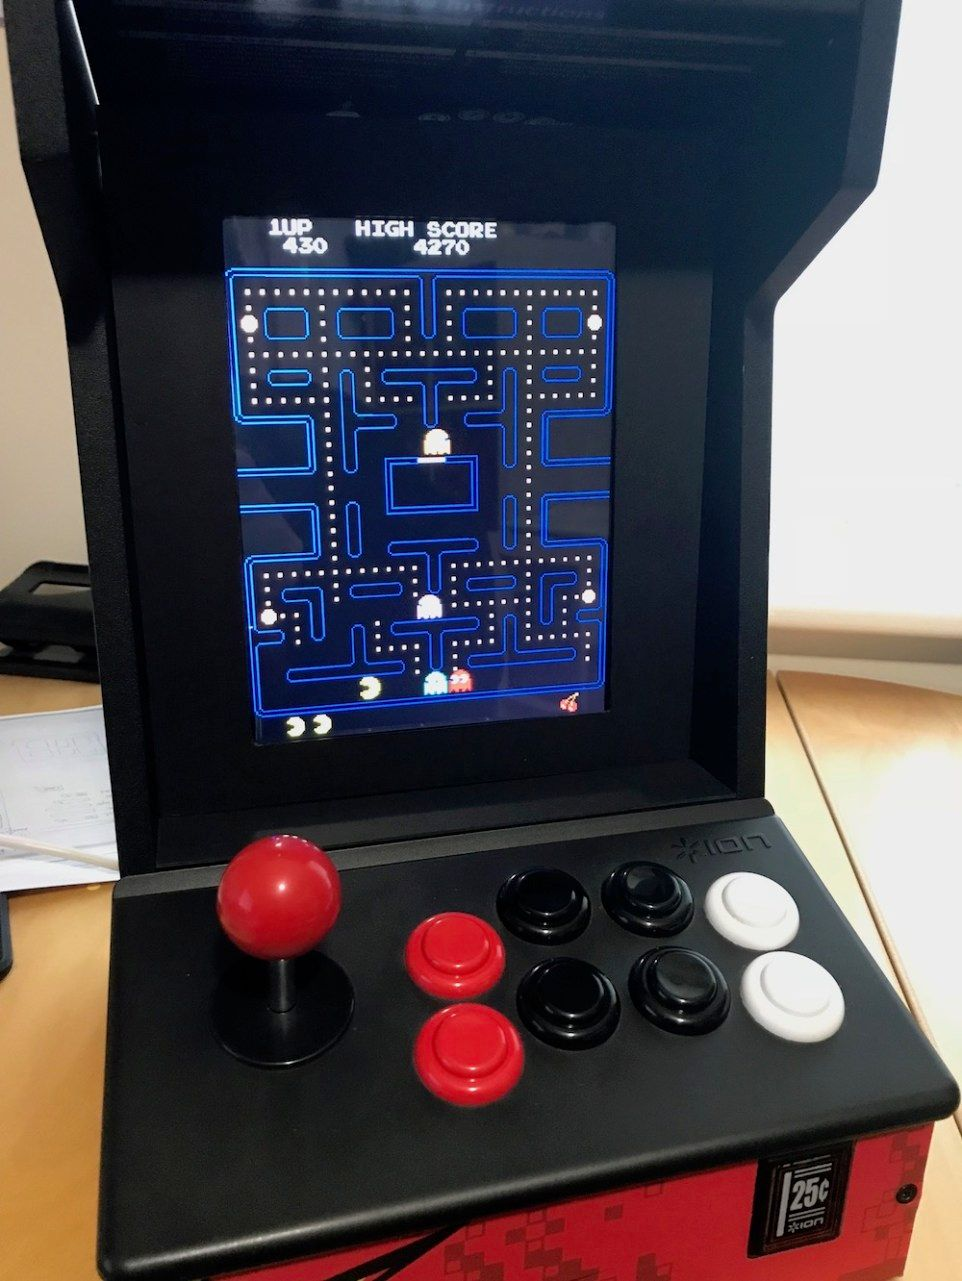 Raspberry Pi + iPad Screen + iCade = Bartop